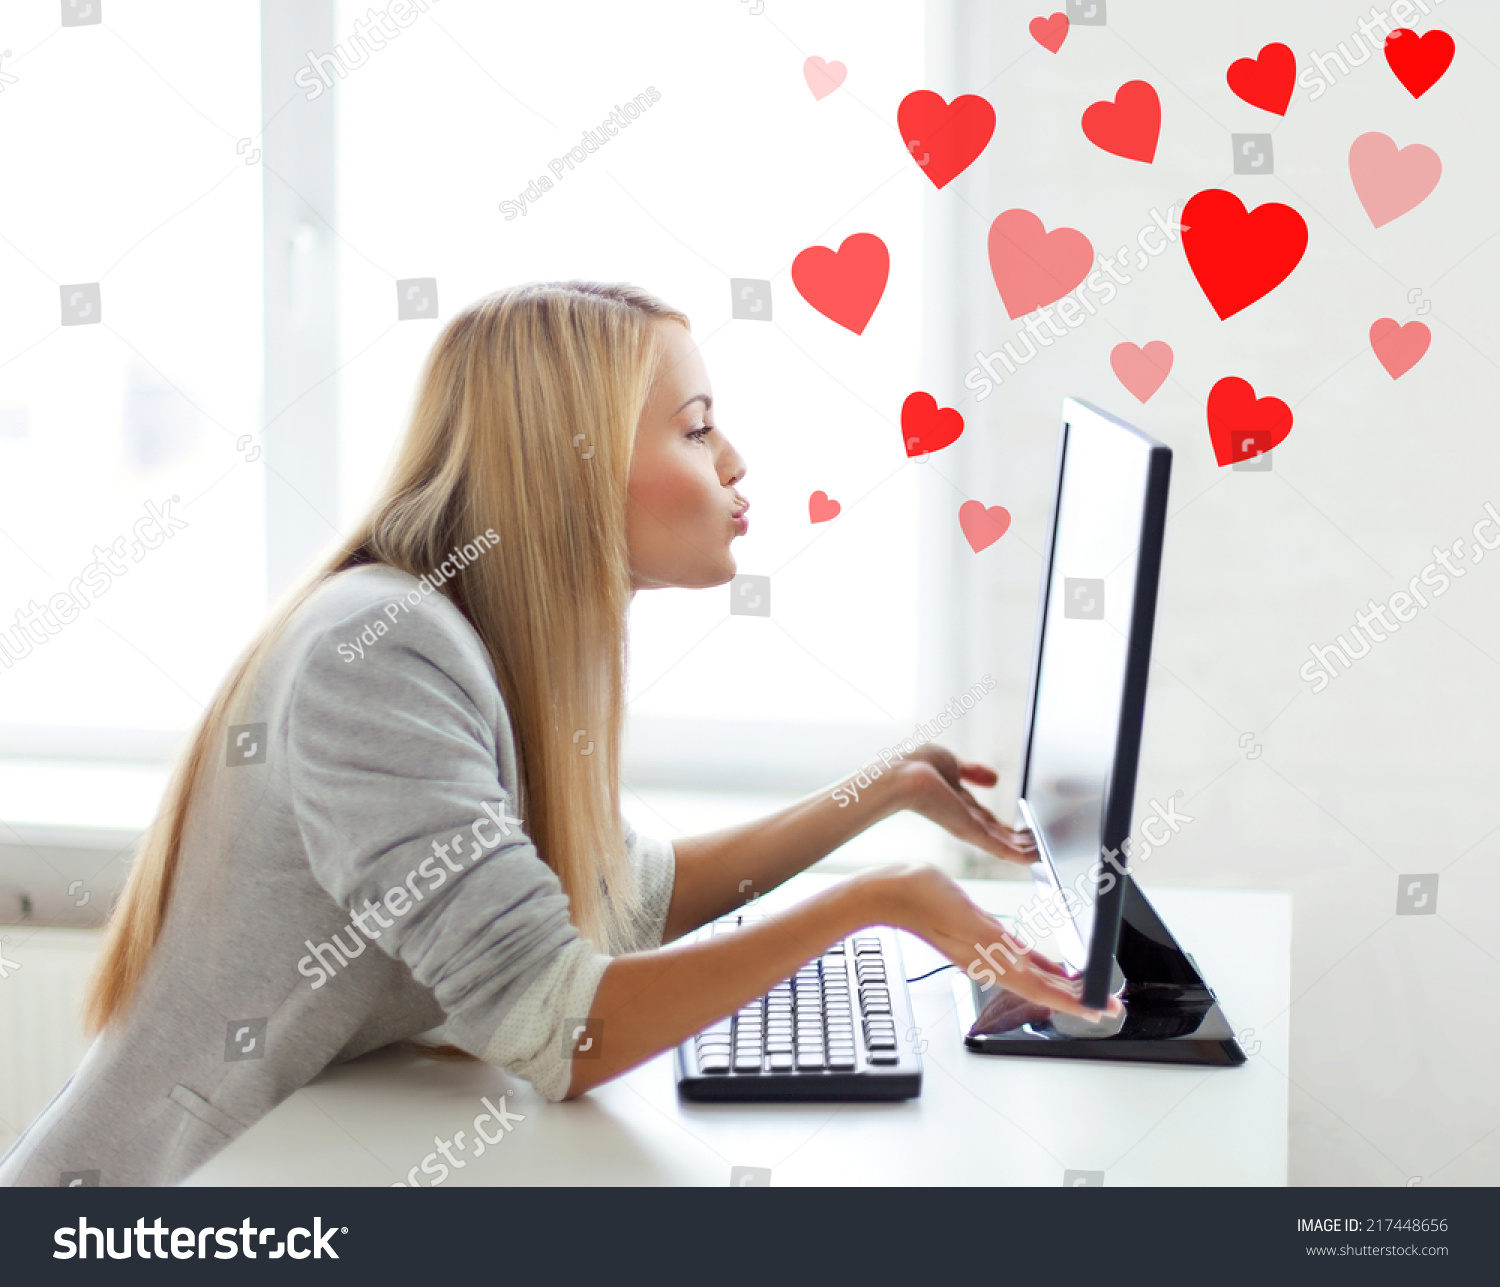 online dating and social networking